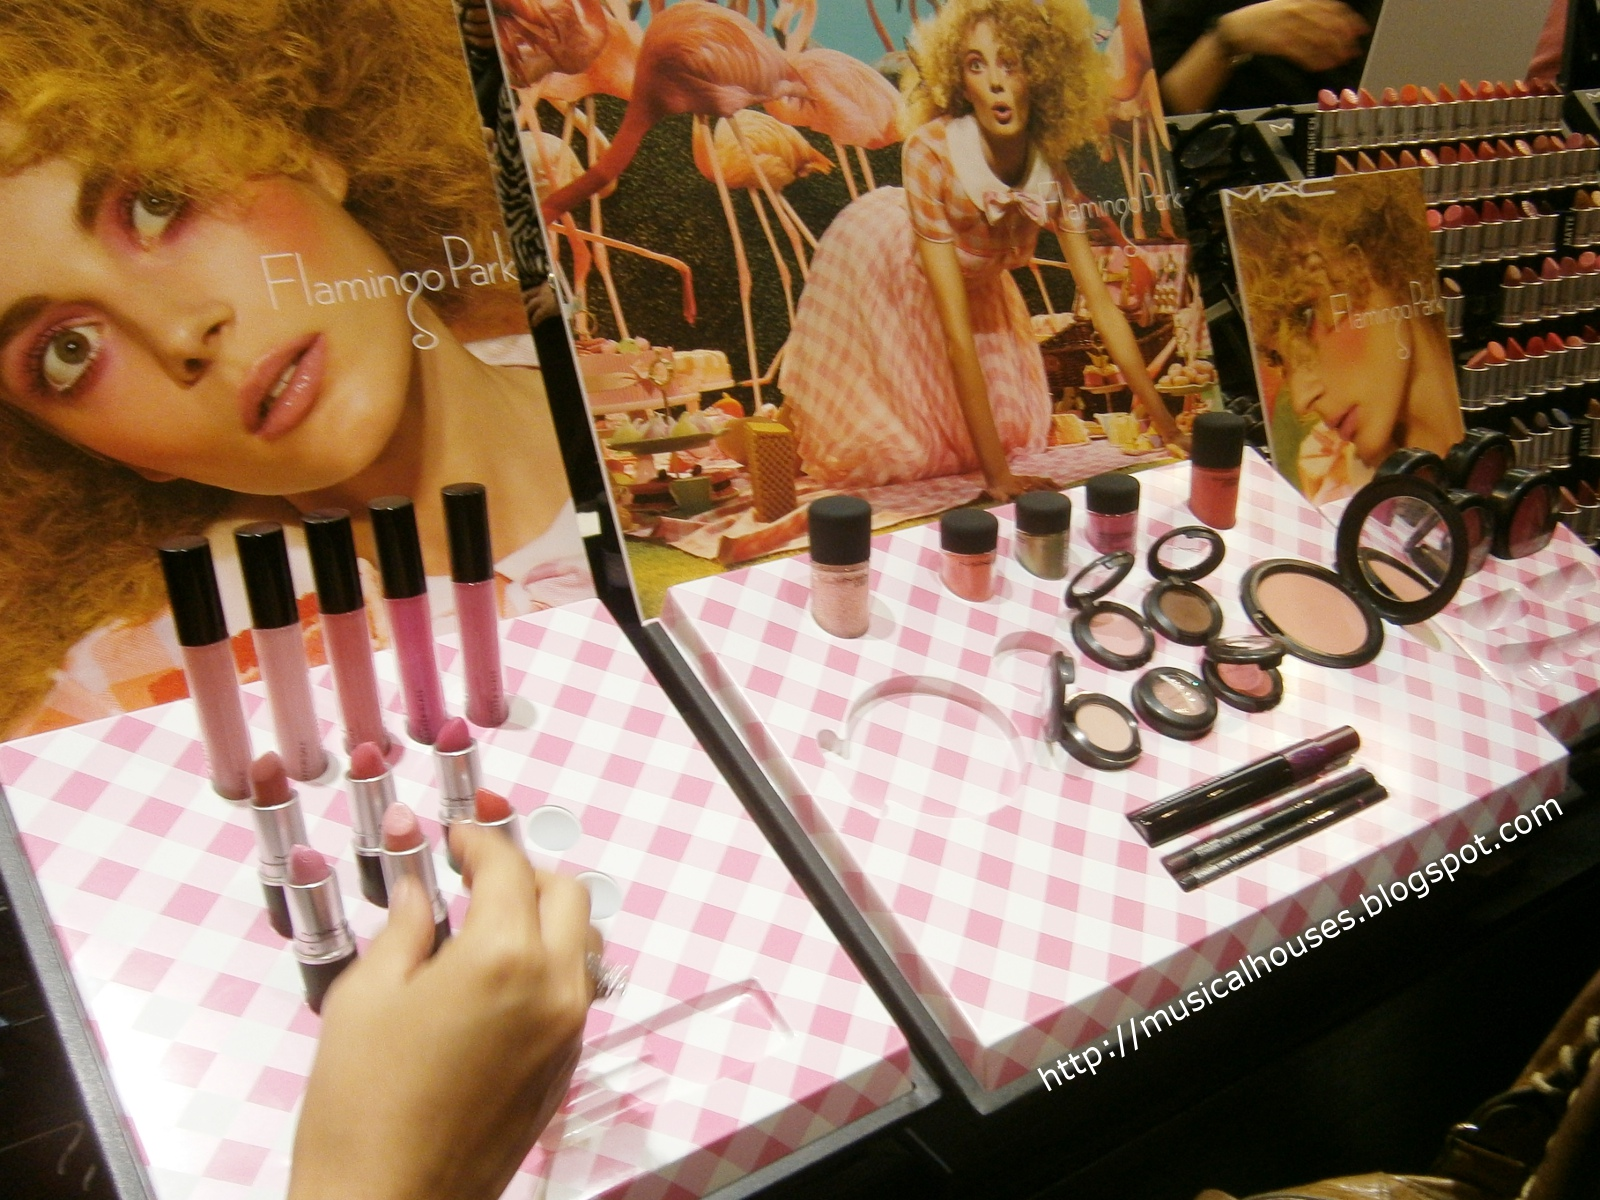 Watch MAC Flamingo Park Spring 2019 Makeup Collection video